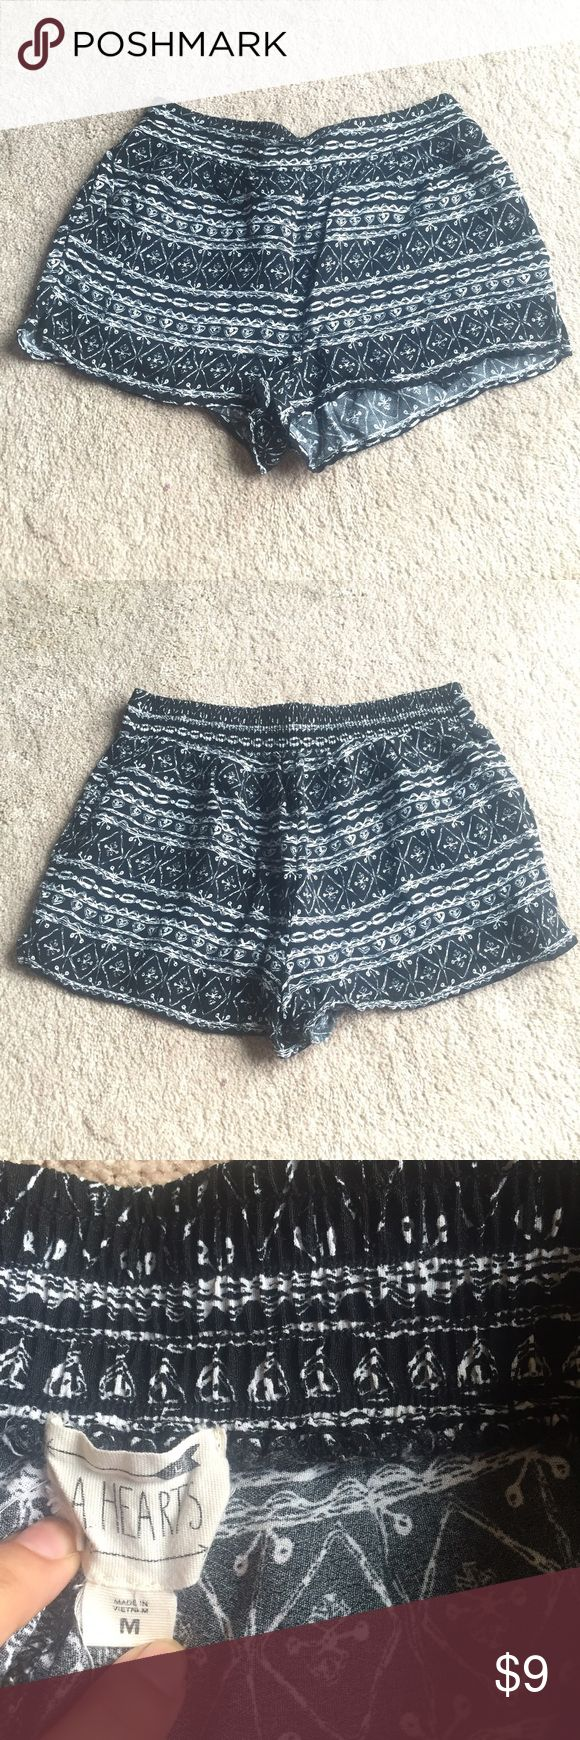 SALE Pacsun (LA Hearts) Tribal Shorts These black and white tribal shorts go great with any crop top or tank top! Fits S/M *Sale price is non-negotiable. PacSun Shorts